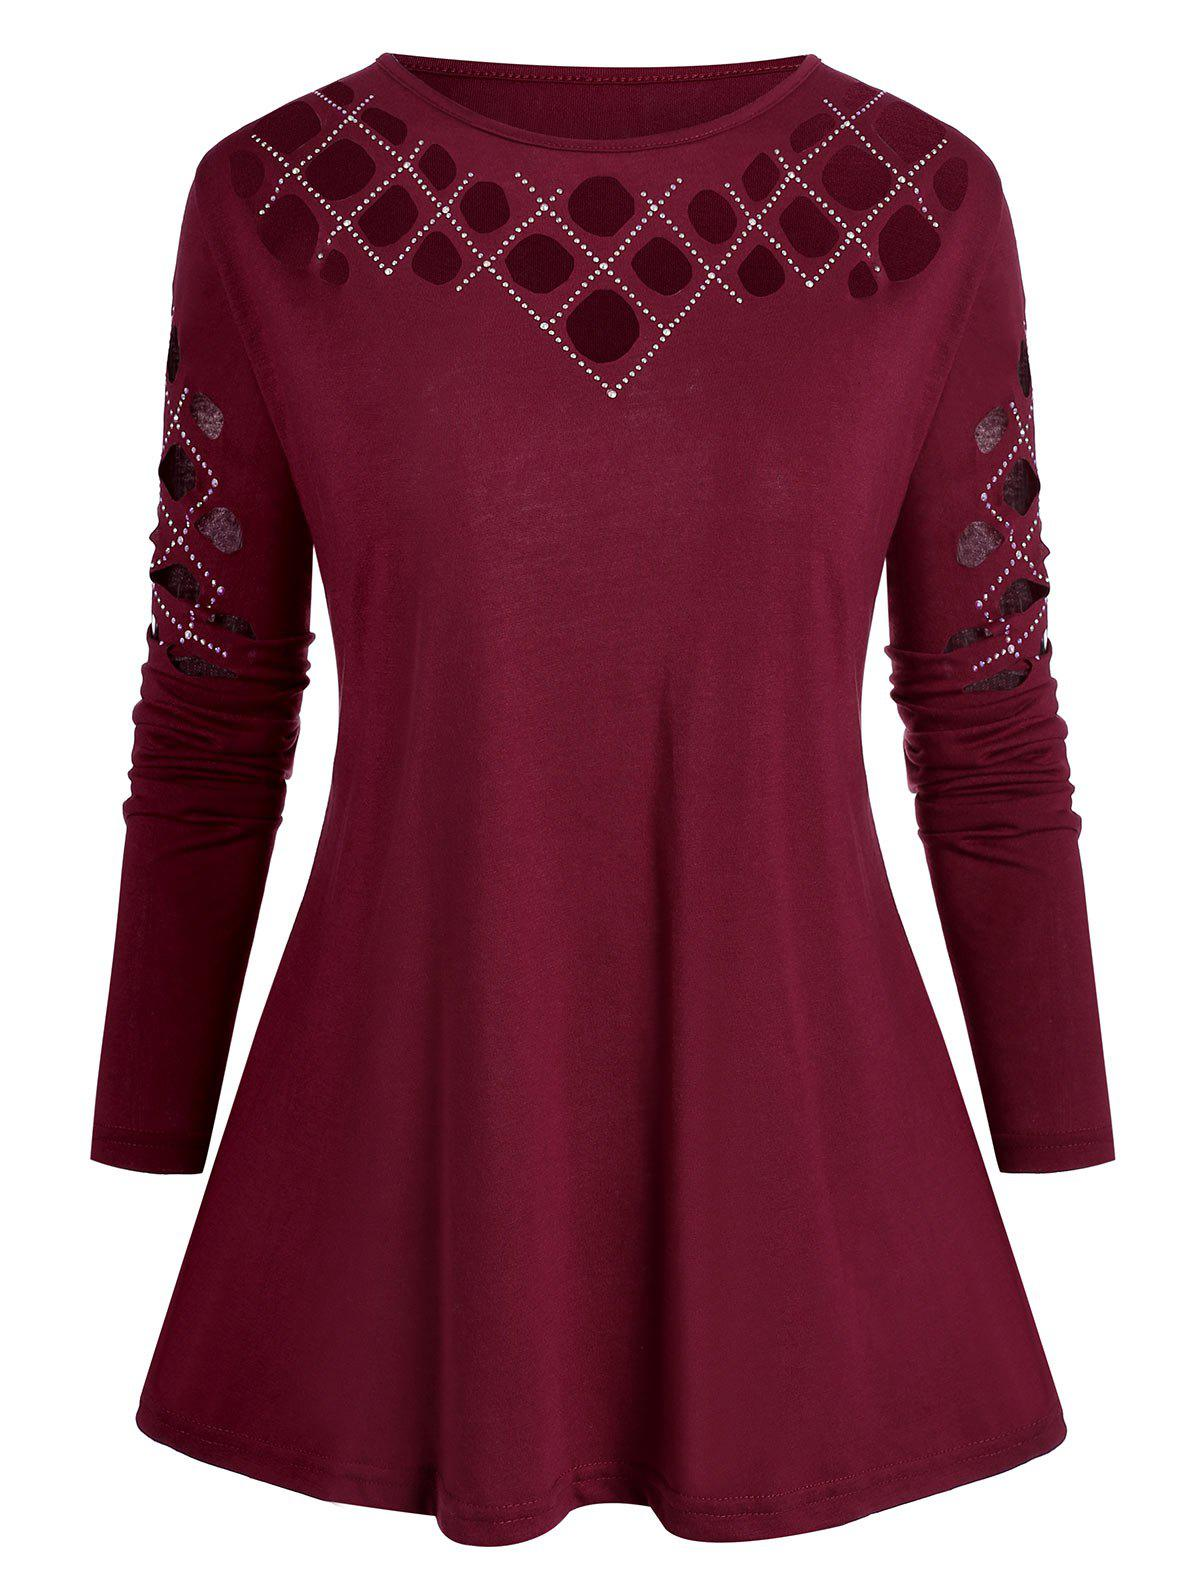 Plus Size Studded Cutout Long Sleeve Tee - ROSE RED 2X